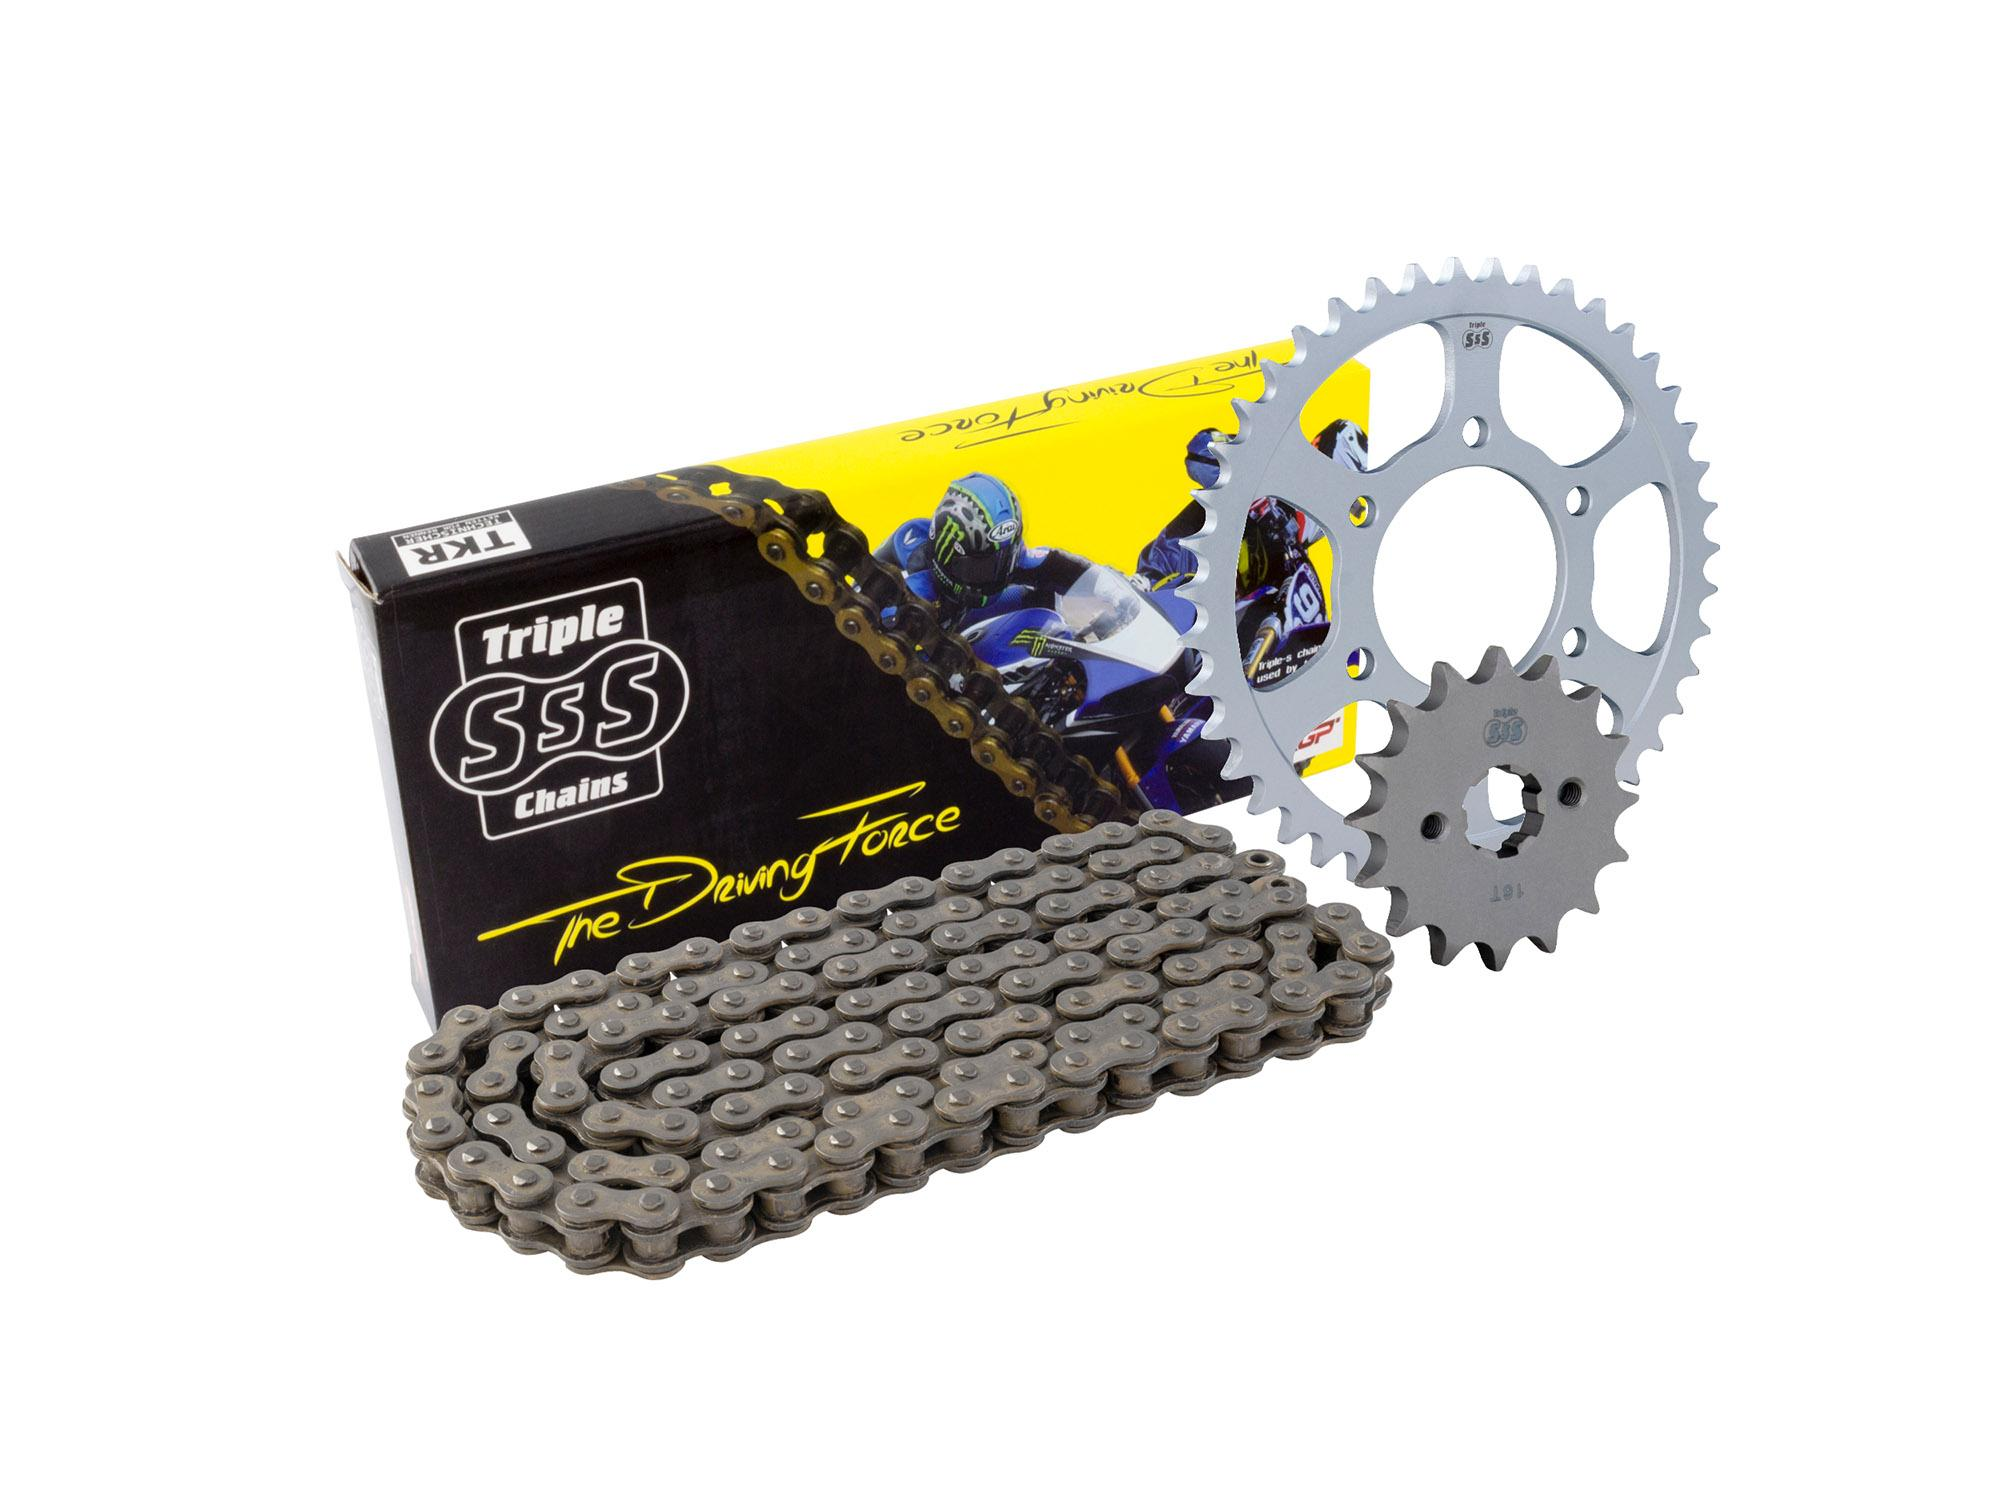 Cagiva 125 Mito Evolution 00-04 Chain & Sprocket Kit: 14T Front, 39T Rear, HD O-Ring Black Chain 520H 114Link